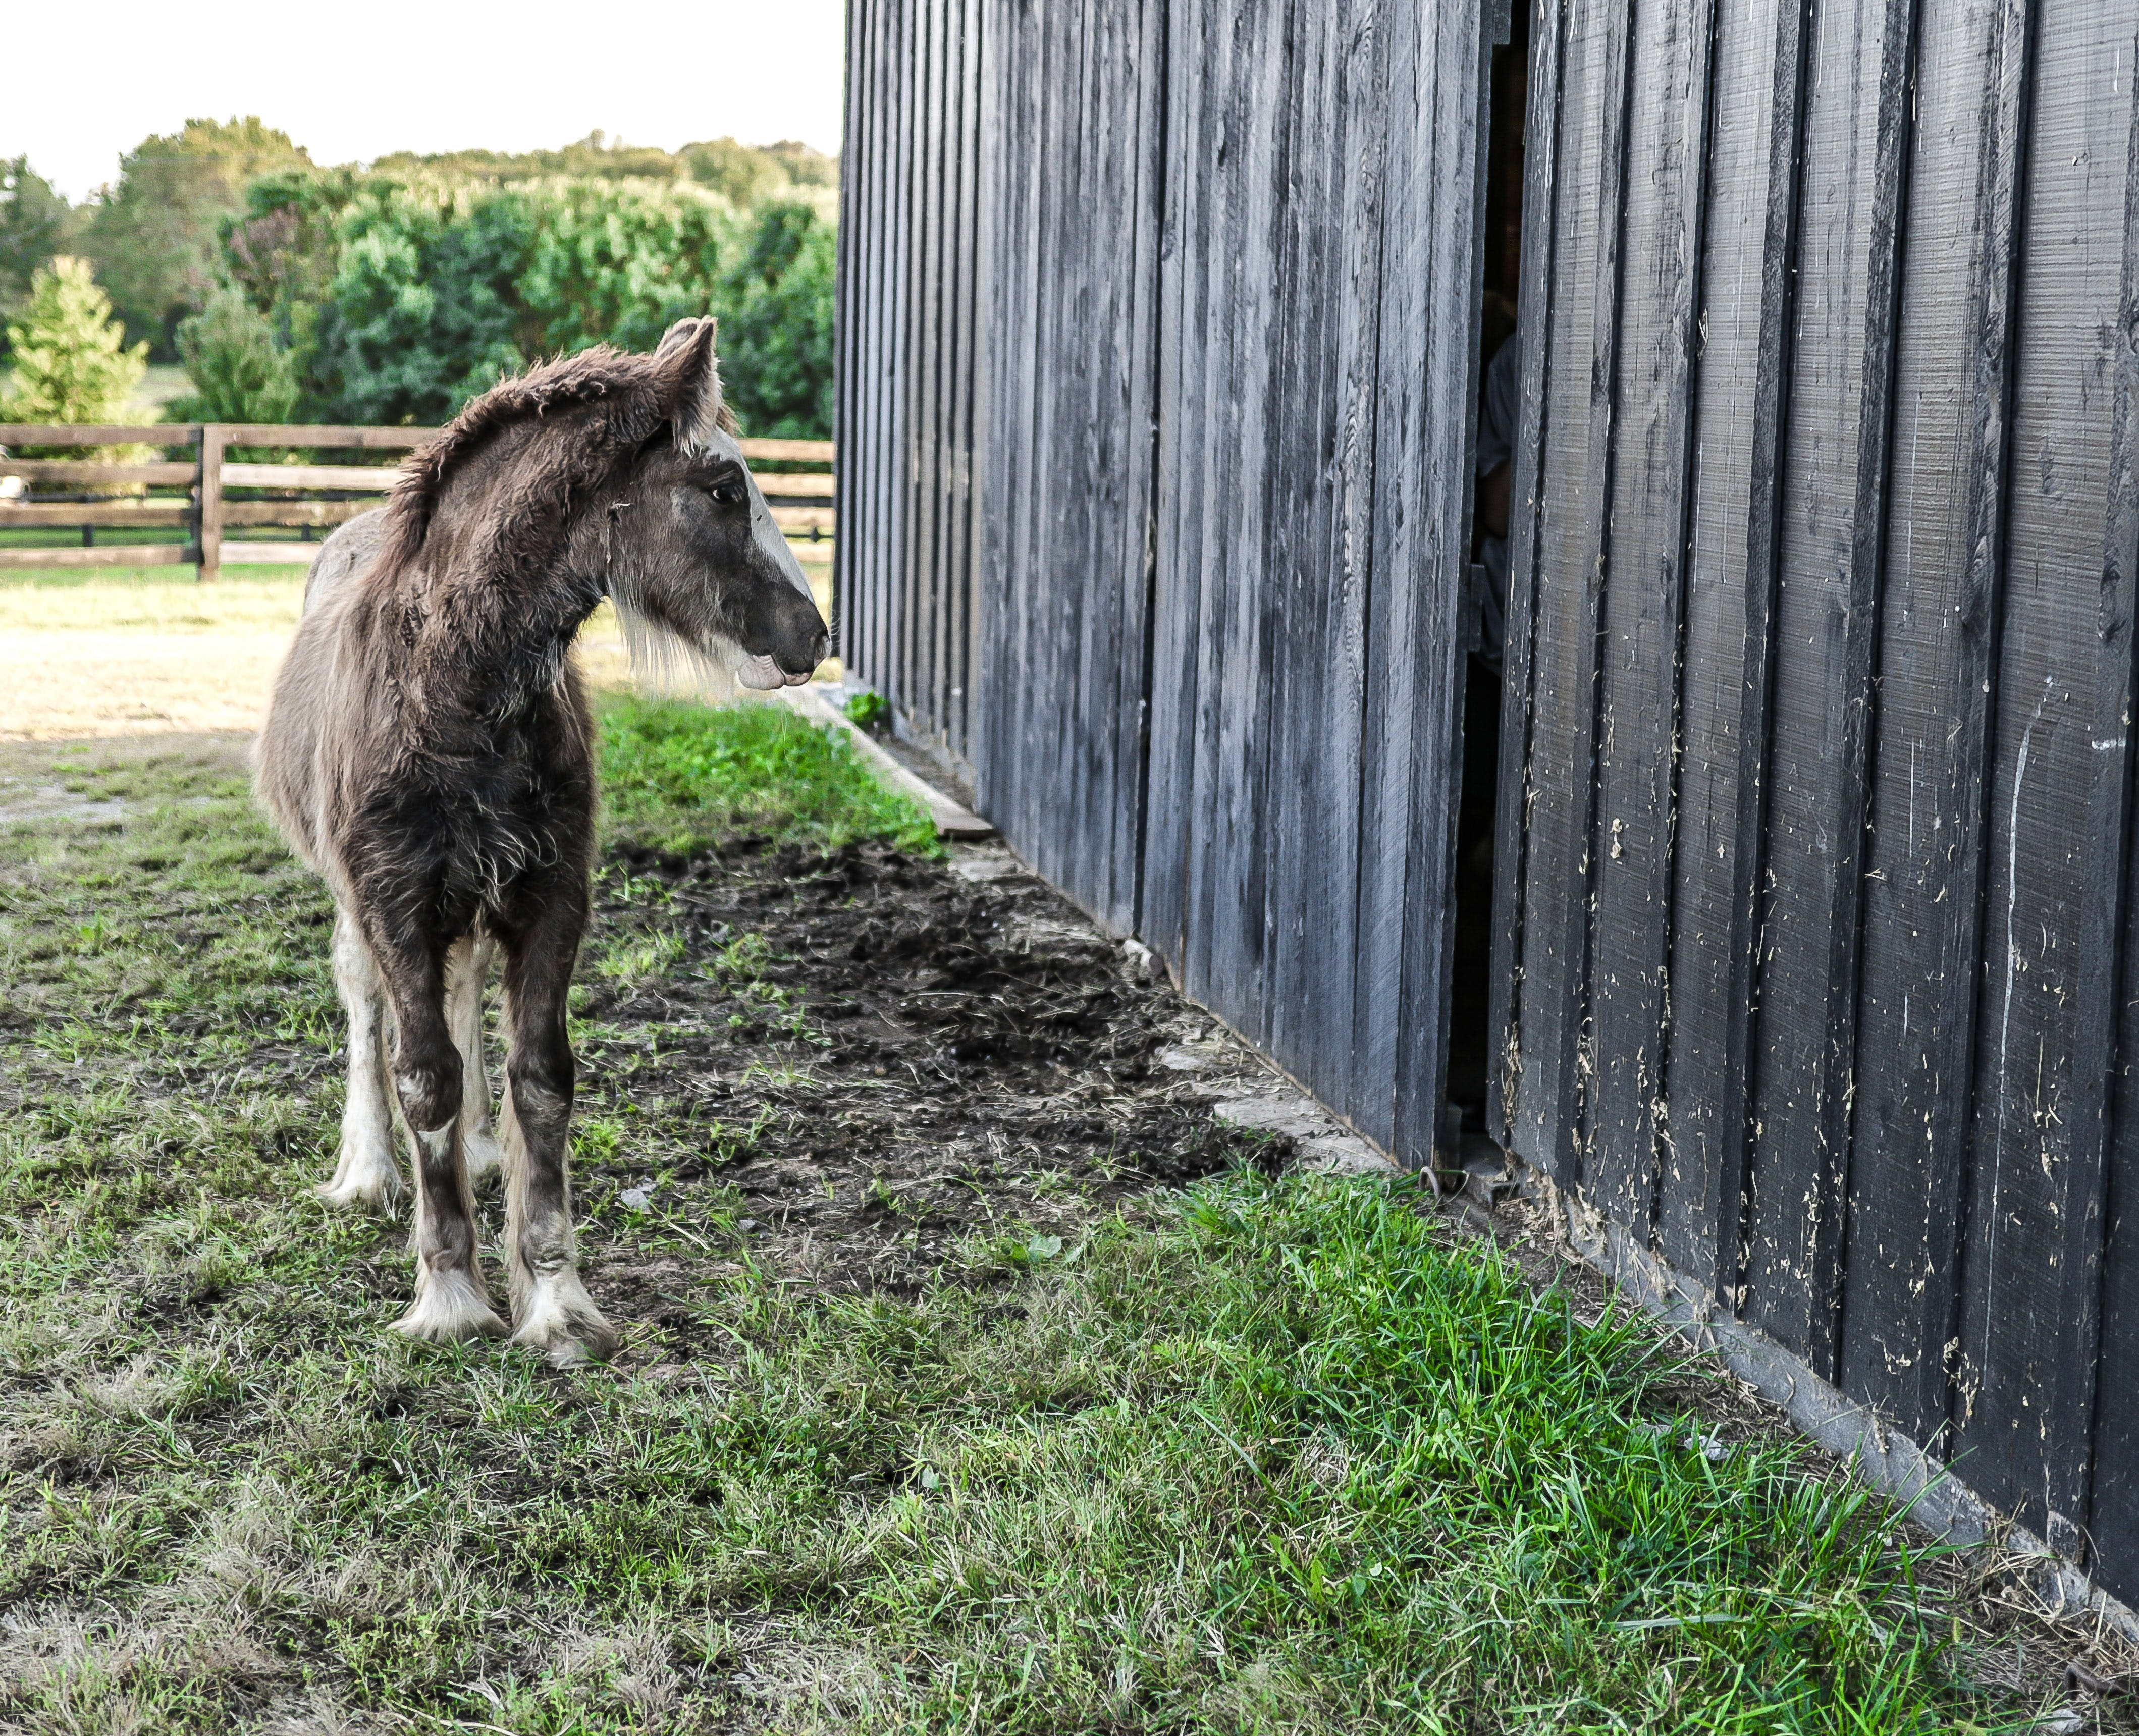 Gray and White Foal Standing Beside Wood Fence